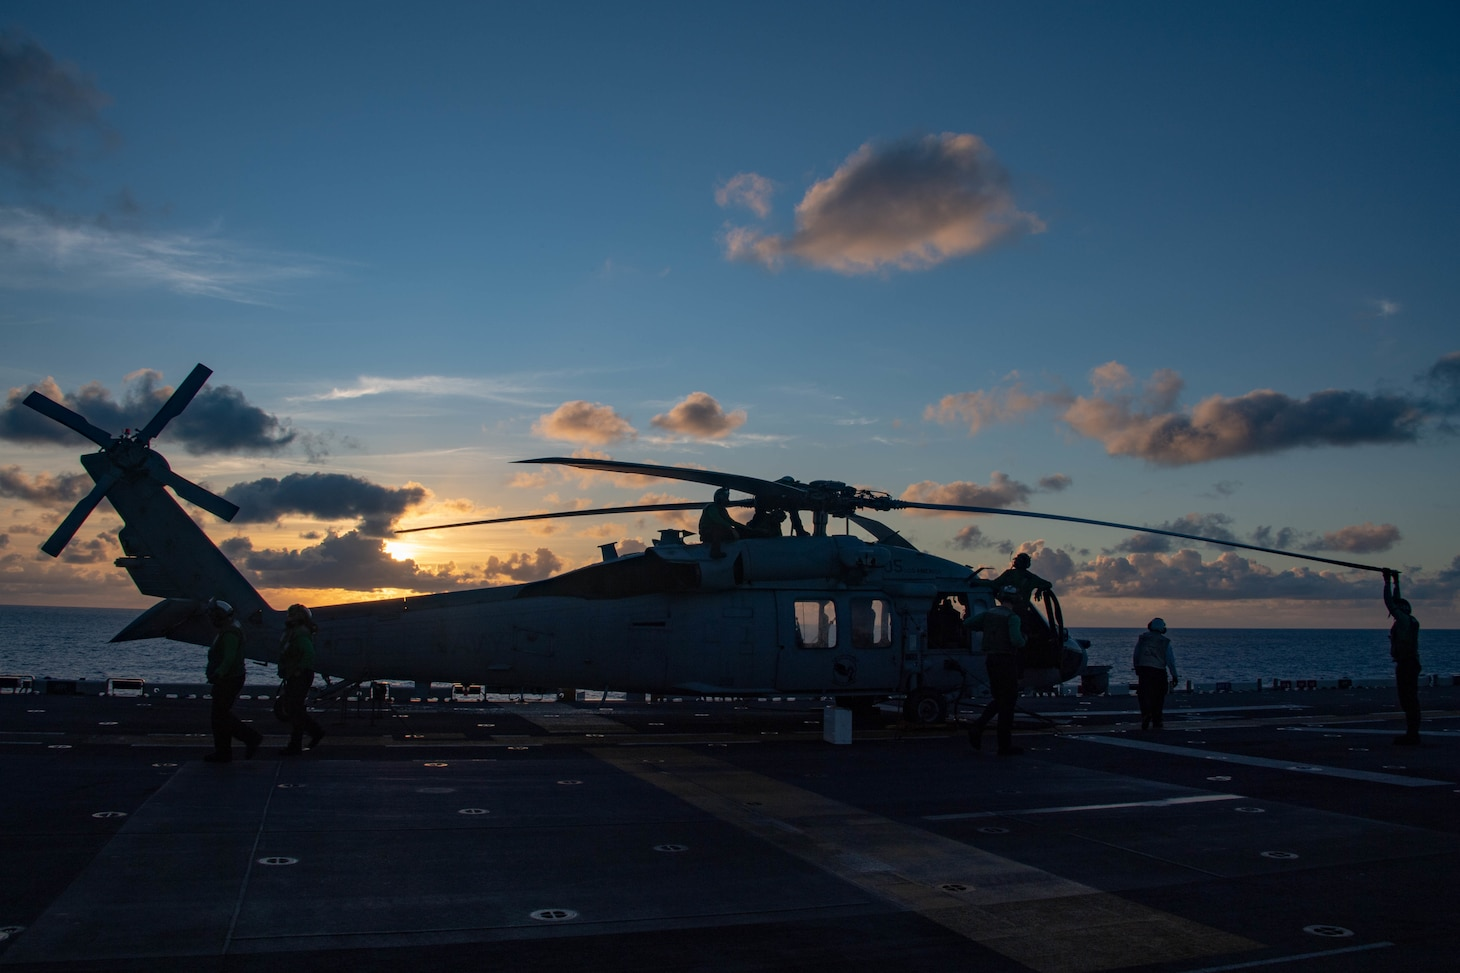 Sailors assigned to the forward-deployed amphibious assault ship USS America (LHA 6) conduct routine maintenance on an MH-60S Seahawk helicopter from the Helicopter Sea Combat Squadron (HSC) 25. America, flagship of the America Expeditionary Strike Group, along with the 31st Marine Expeditionary Unit, is operating in the U.S. 7th Fleet area of responsibility to enhance interoperability with allies and partners and serve as a ready response force to defend peace and stability in the Indo-Pacific region.